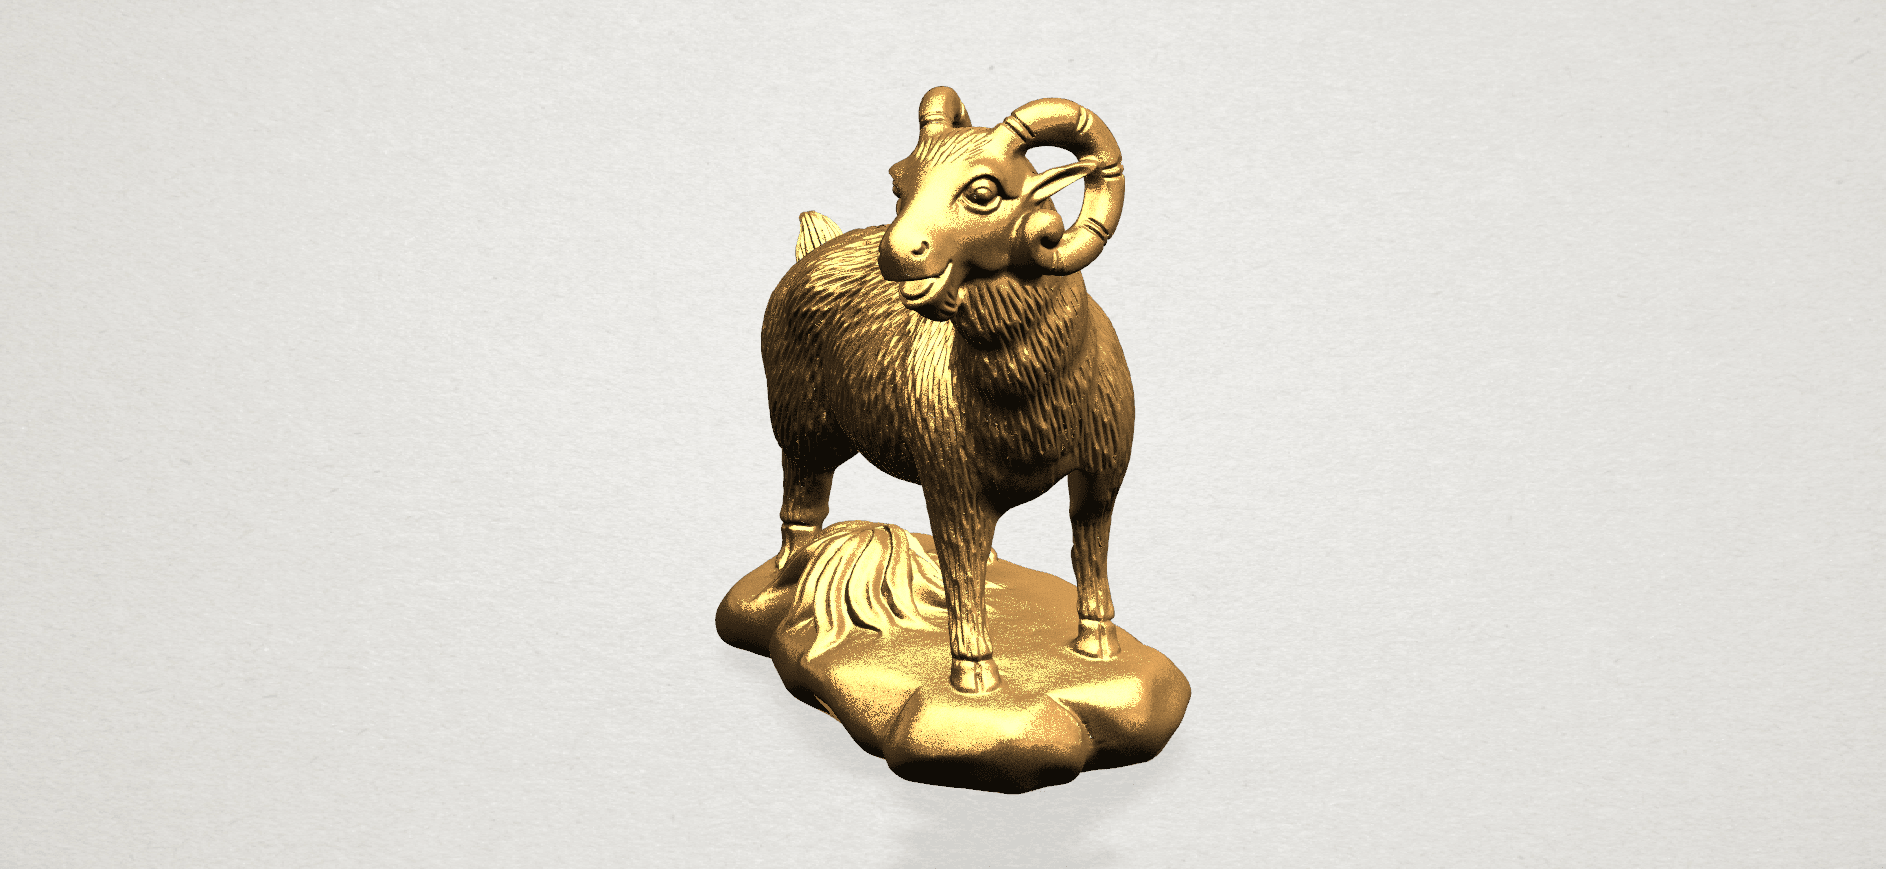 Chinese Horoscope08-B03.png Download free STL file Chinese Horoscope 08 Goat • Model to 3D print, GeorgesNikkei